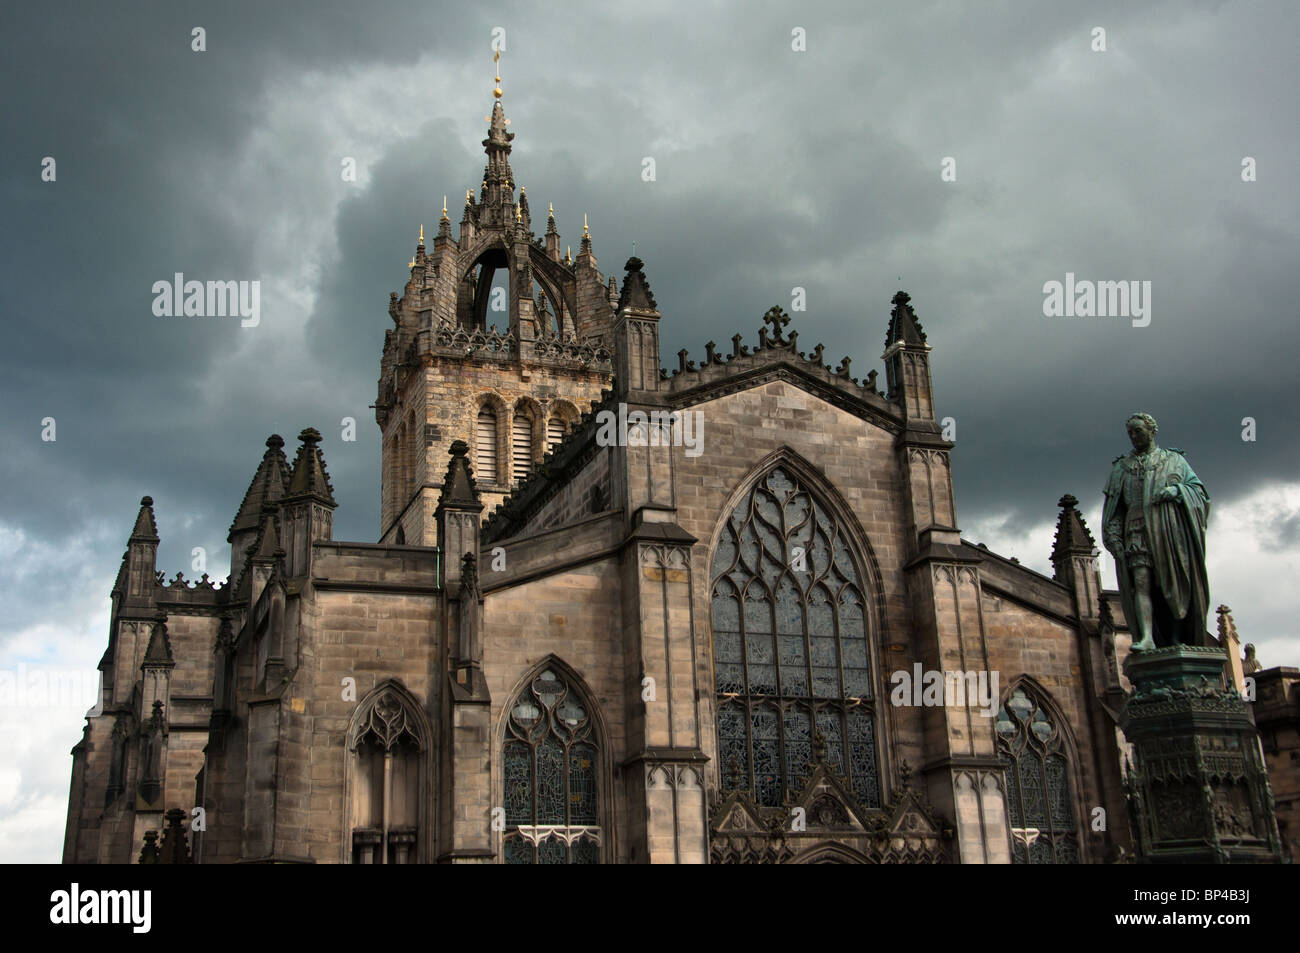 st-giles-cathedral-under-a-dramatic-stor